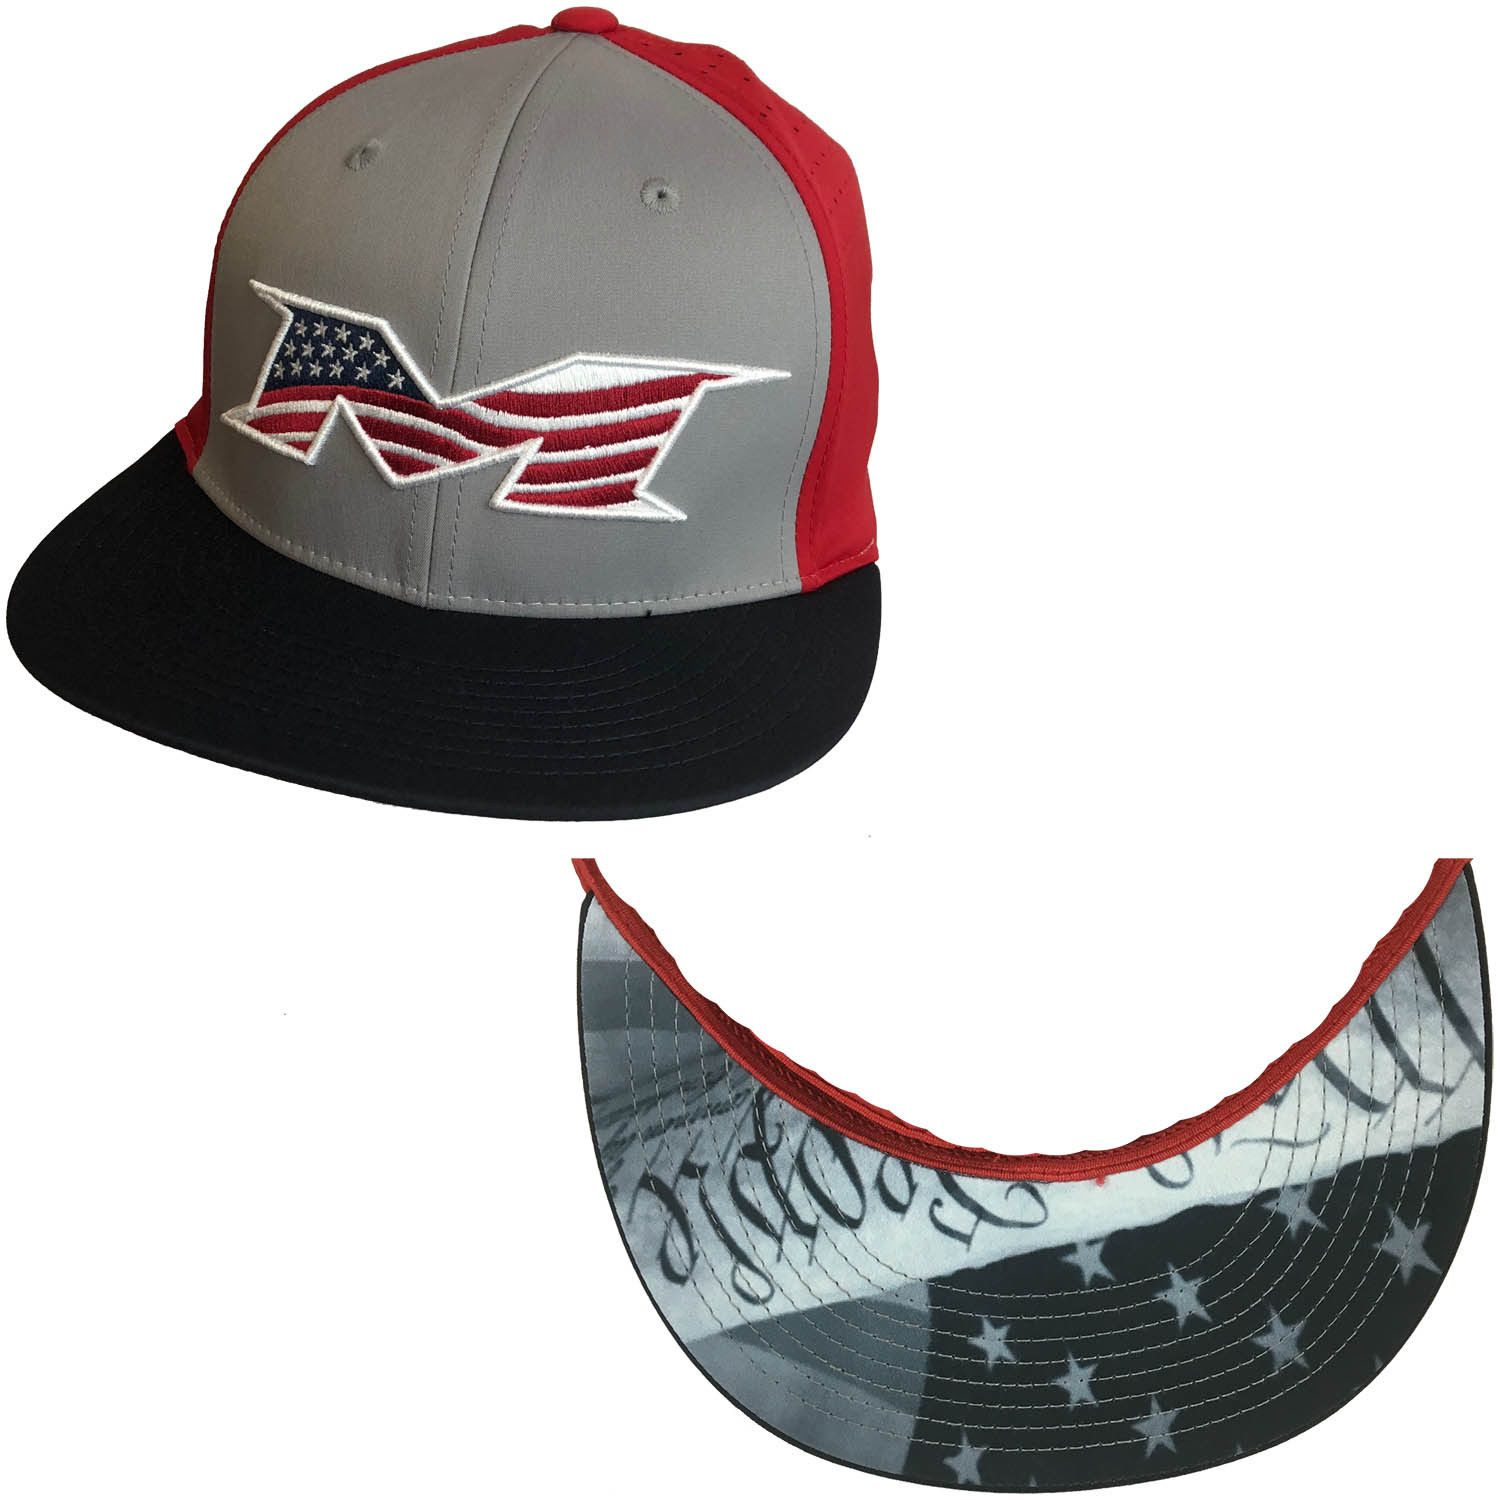 53dc96d5e76 Hats and Headwear 159057  Miken Hat By Richardson (Pts30) We The People Sm